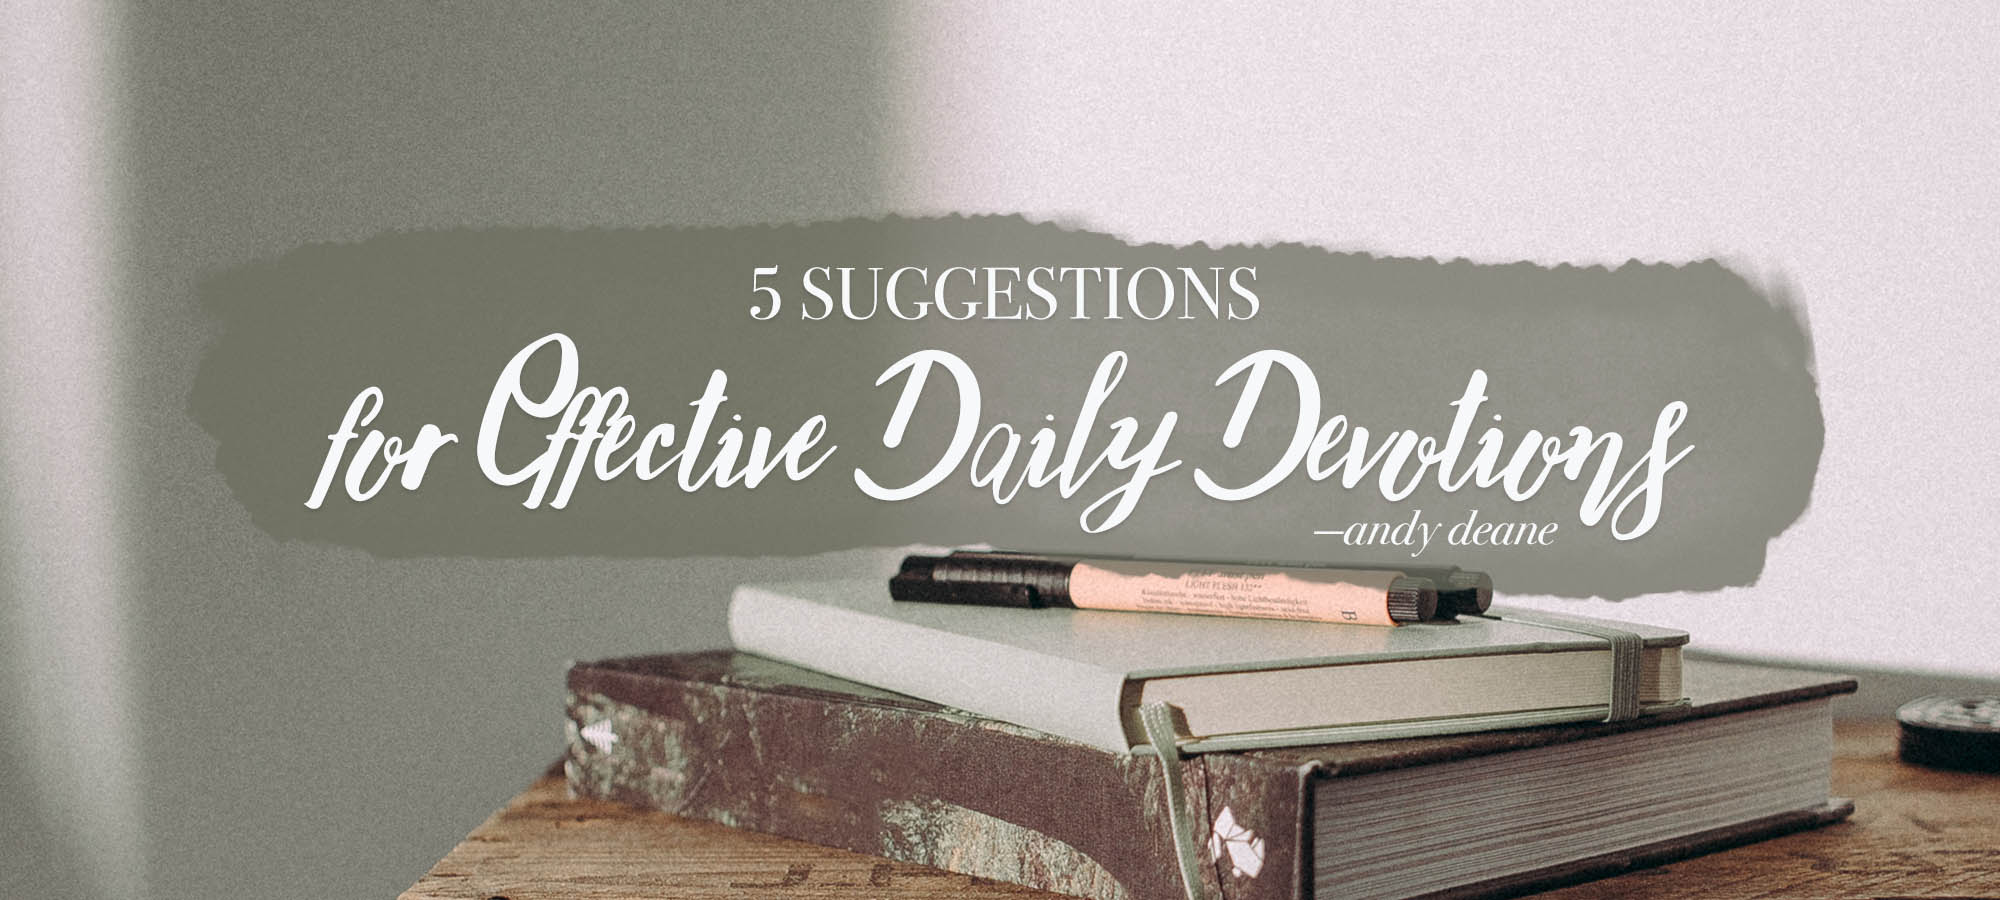 Five Suggestions for Effective Daily Devotions